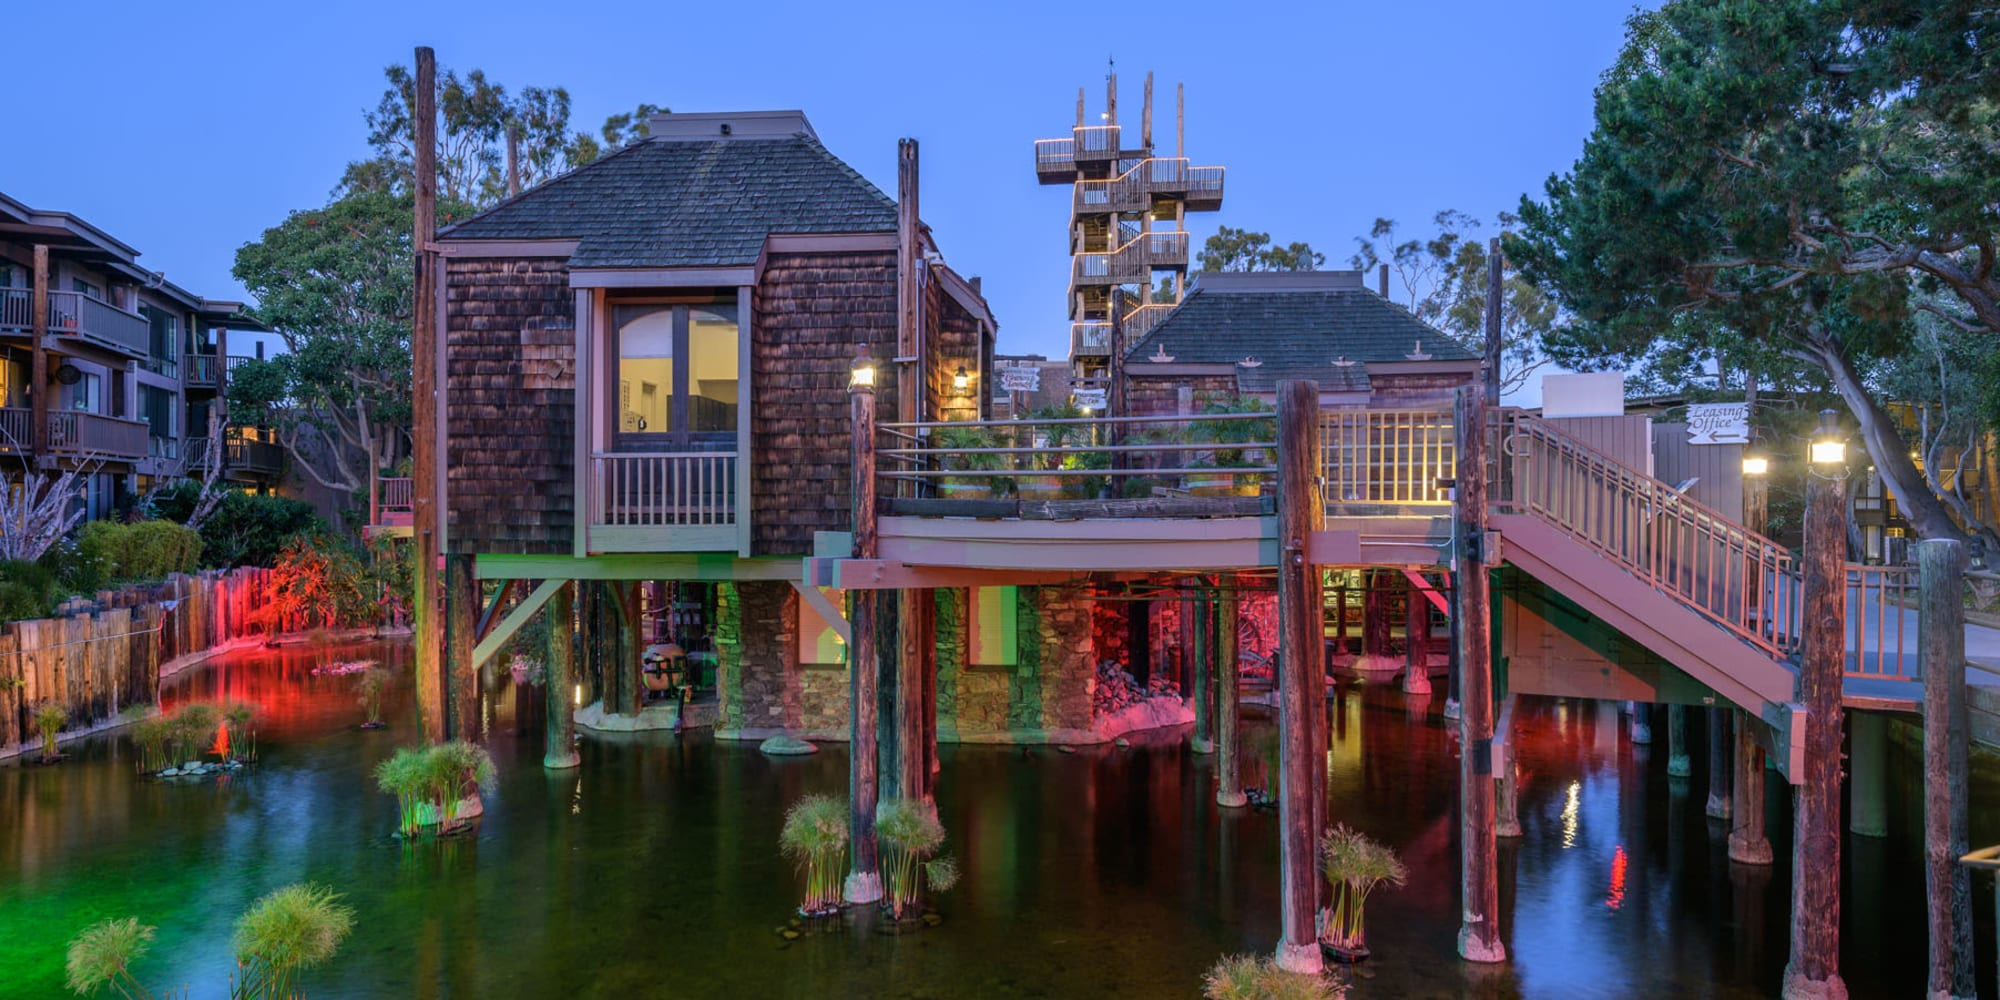 Dusk view of the clubhouse and lagoon at Mariners Village in Marina del Rey, California